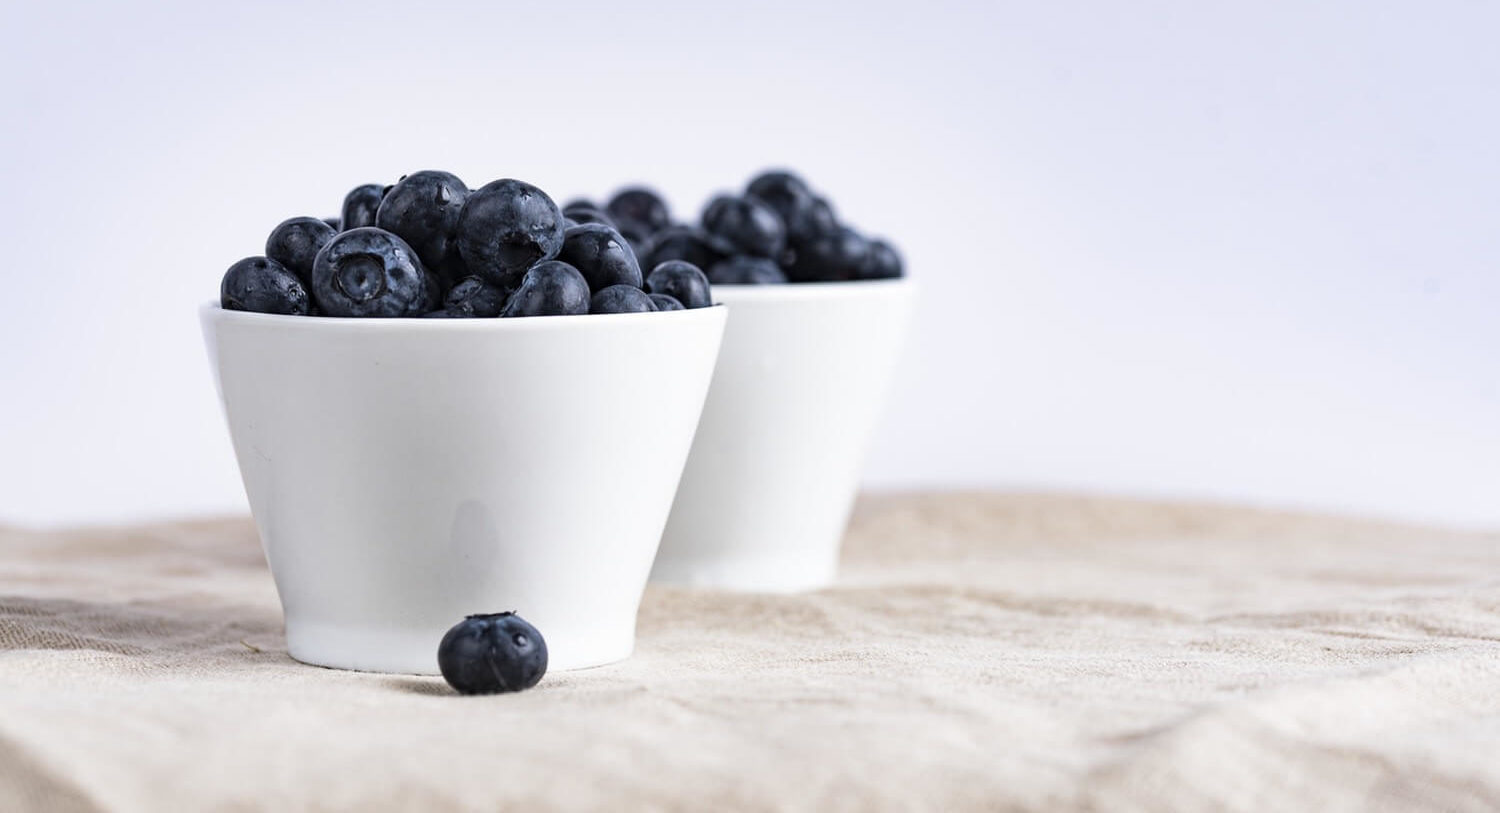 Ask a Vet: Can I Safely Feed My Dog a Variety of Fruits Everyday? | Vanillapup